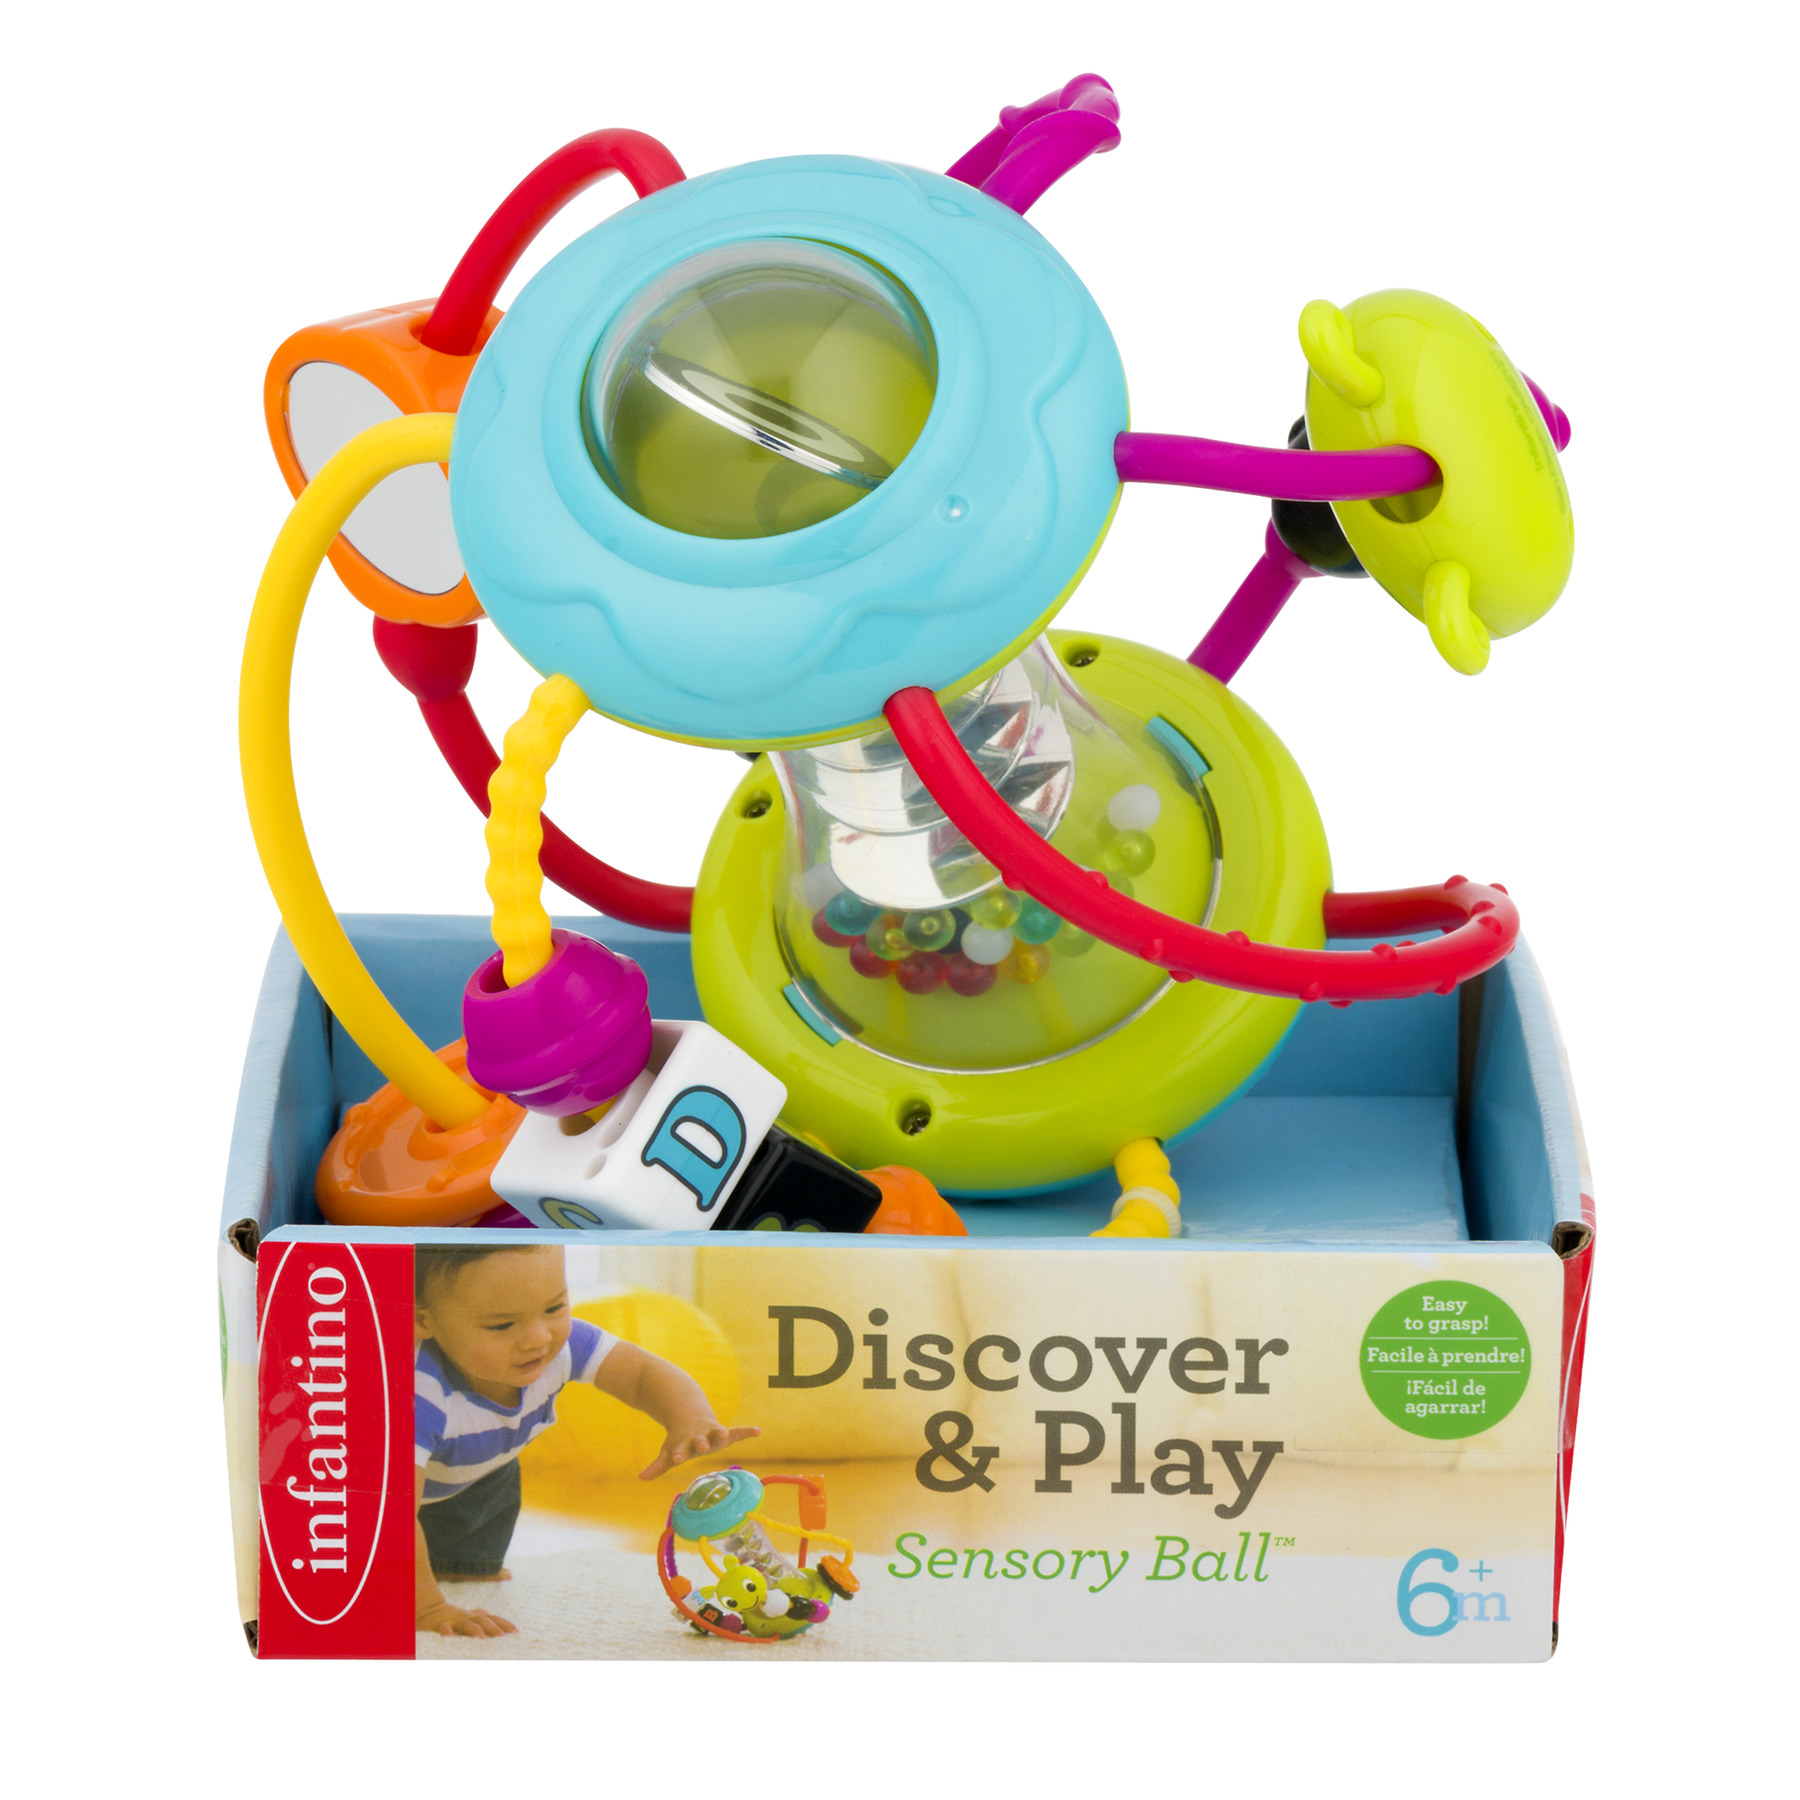 Infantino Discover & Play Sensory Ball 6+m, 1.0 CT